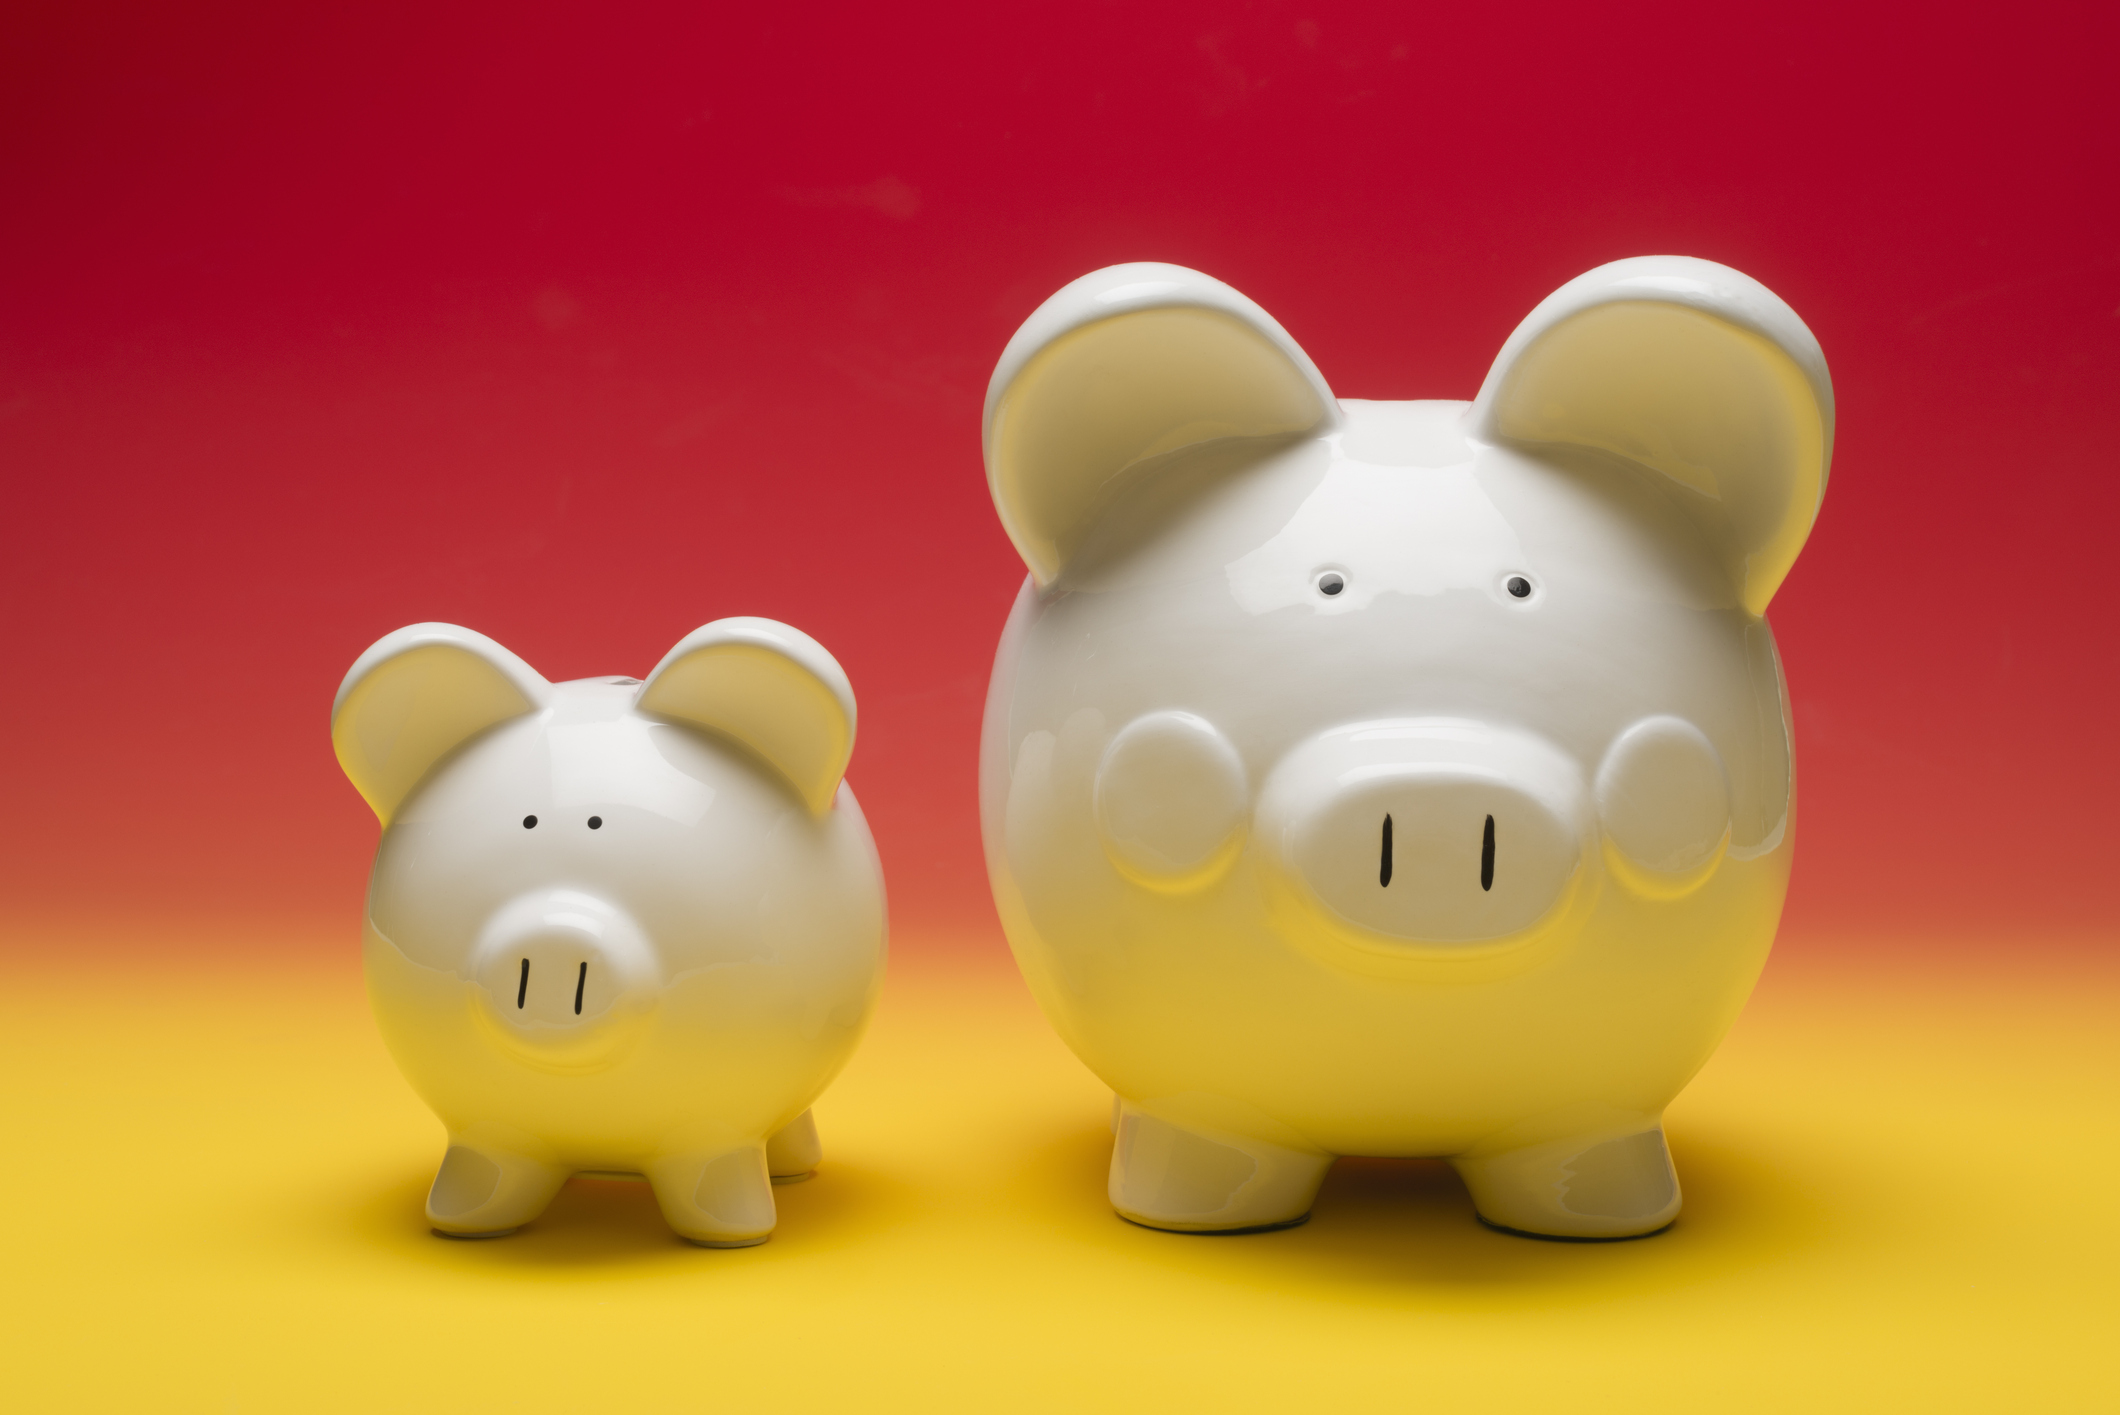 Compare Financial Aid Packages to Make Sure You Get The Best Deal